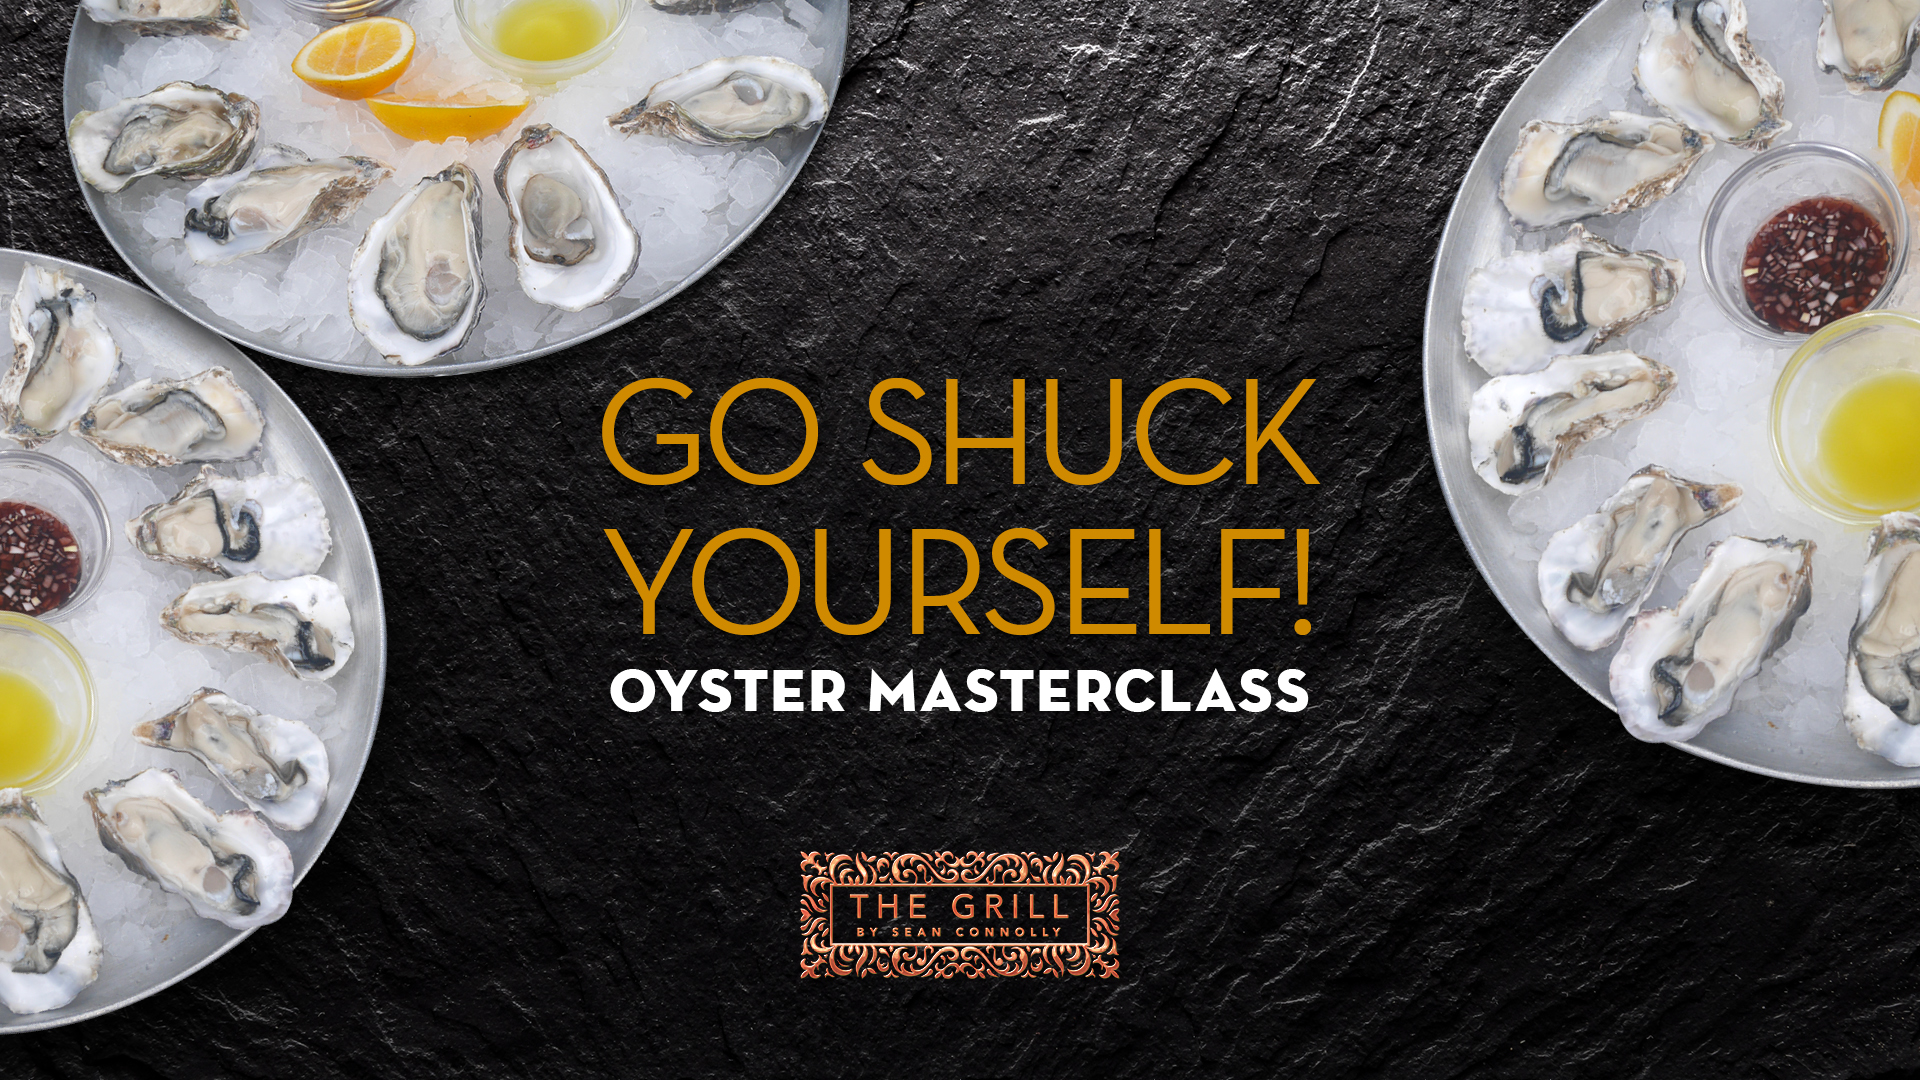 The Grill Oyster Masterclass image